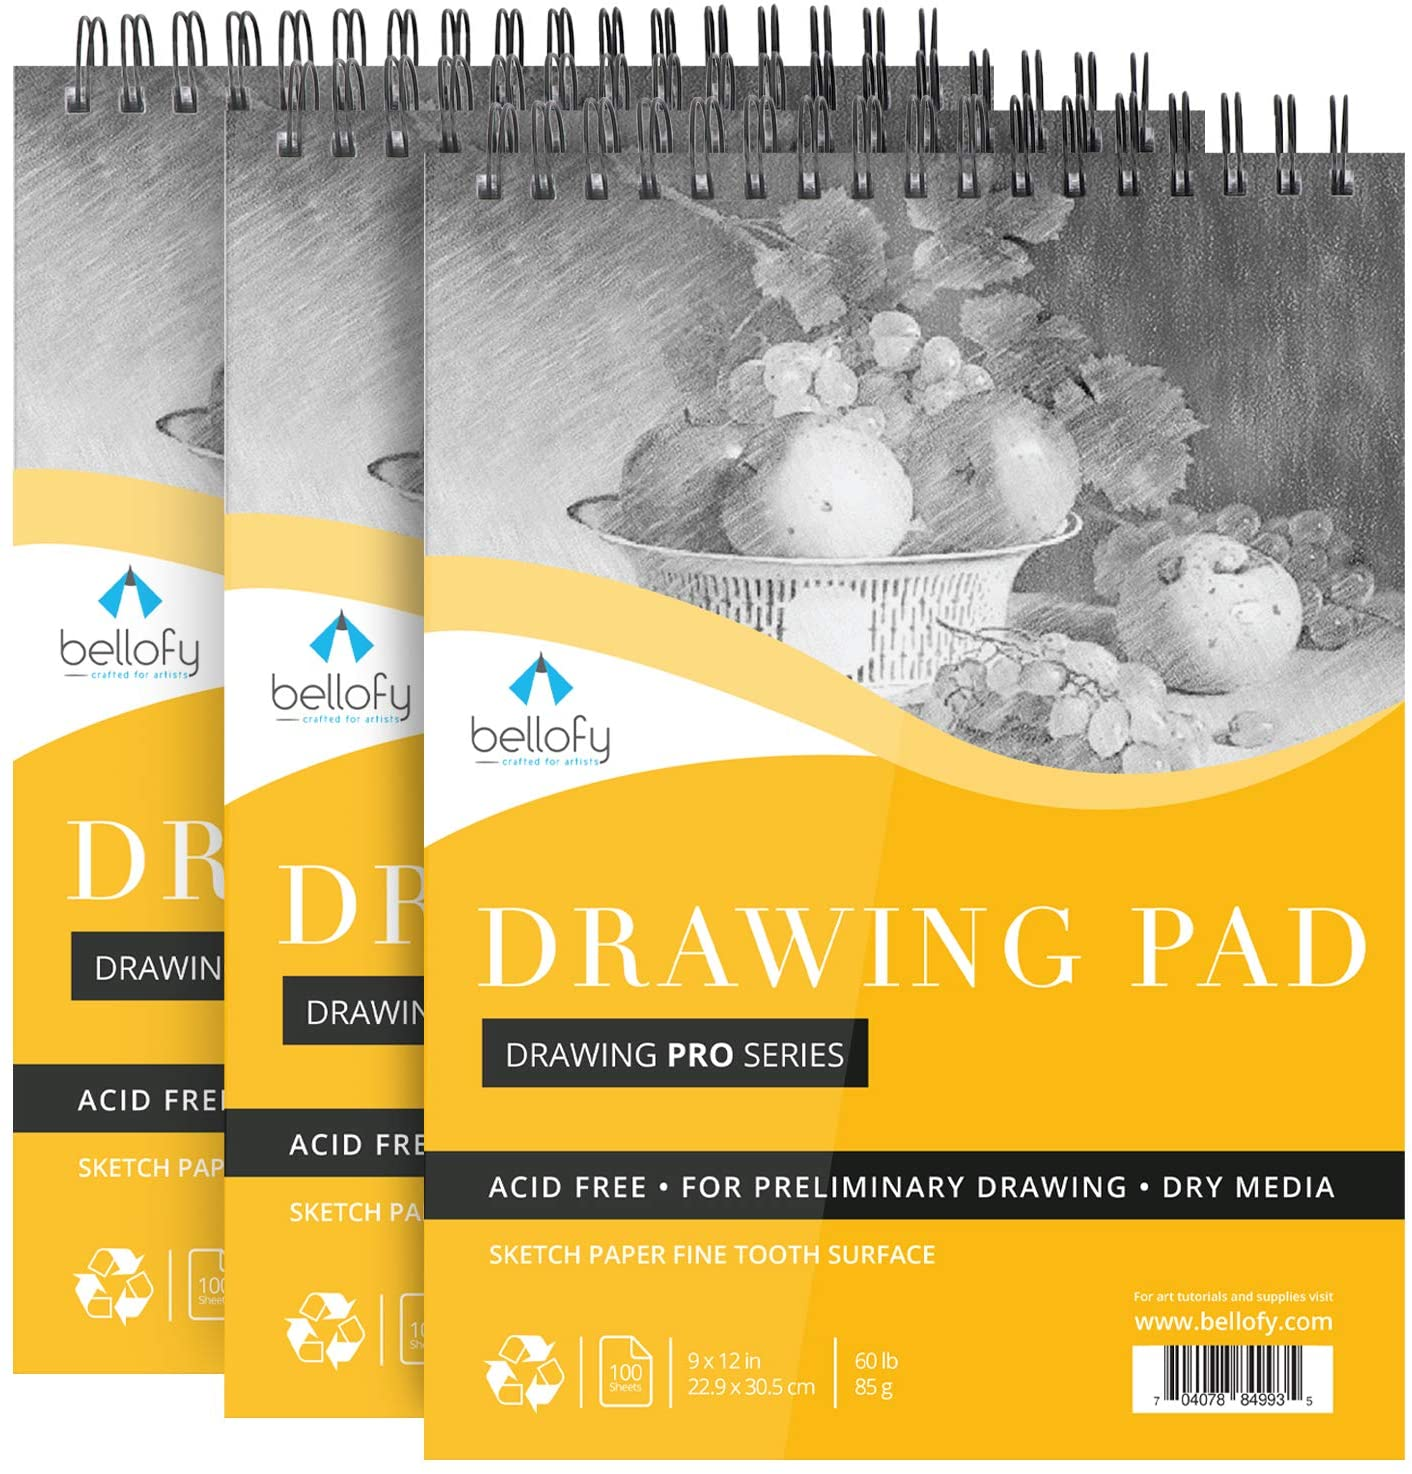 """Bellofy 3 x Drawing Paper Pads 9"""" x 12""""   300 Sheets   60lbs 85g   Acid Free Sketchbook Paper for Dry Media   Top Spiral Bound Sketchpad for Kids, Beginners, Artists & Professionals: Arts, Crafts & Sewing"""